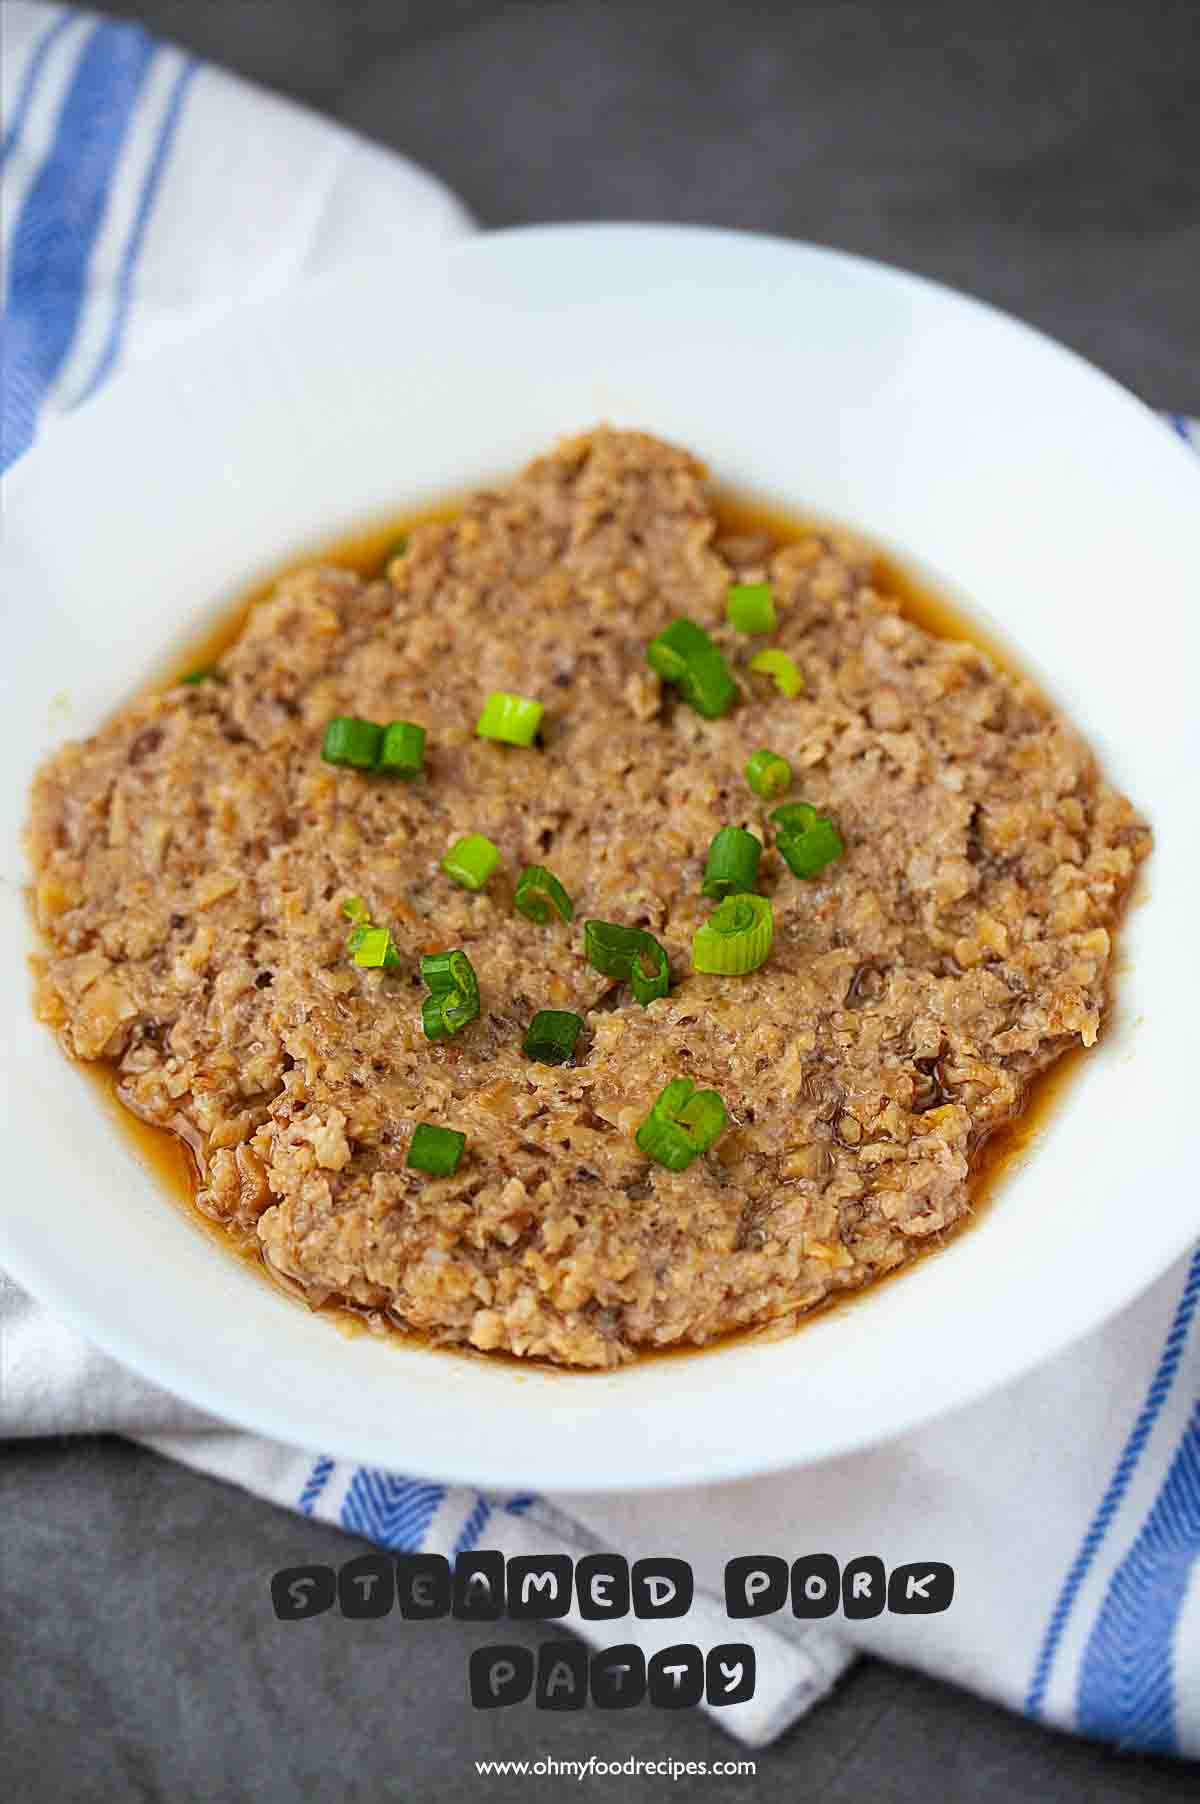 Chinese steamed minced pork with mushrooms or steamed pork patty